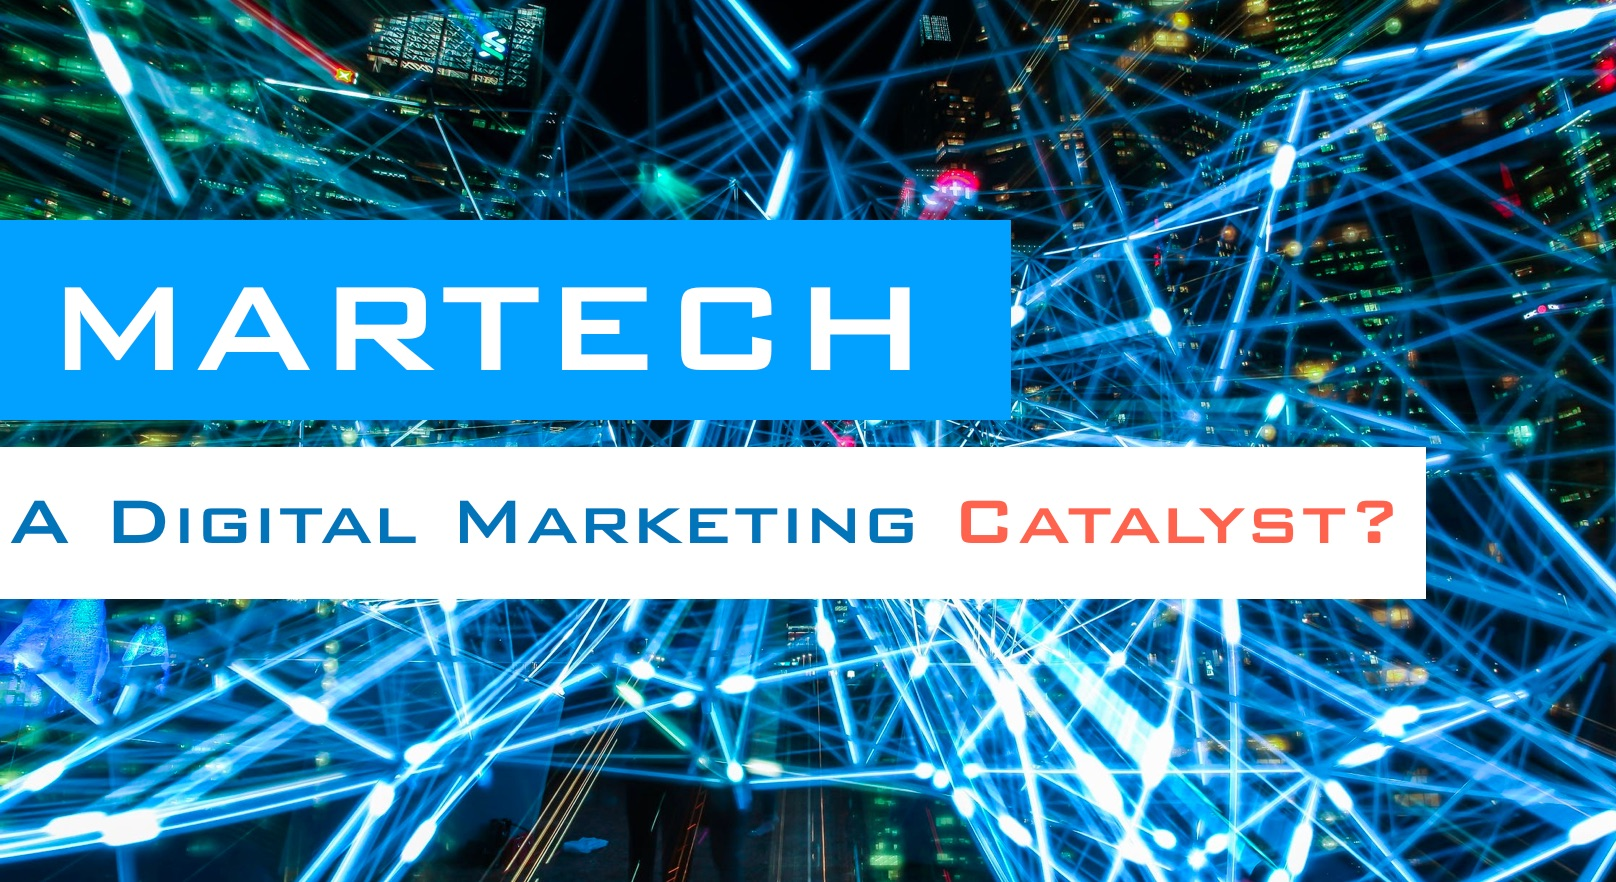 MARTECH Digital Marketing Catalyst